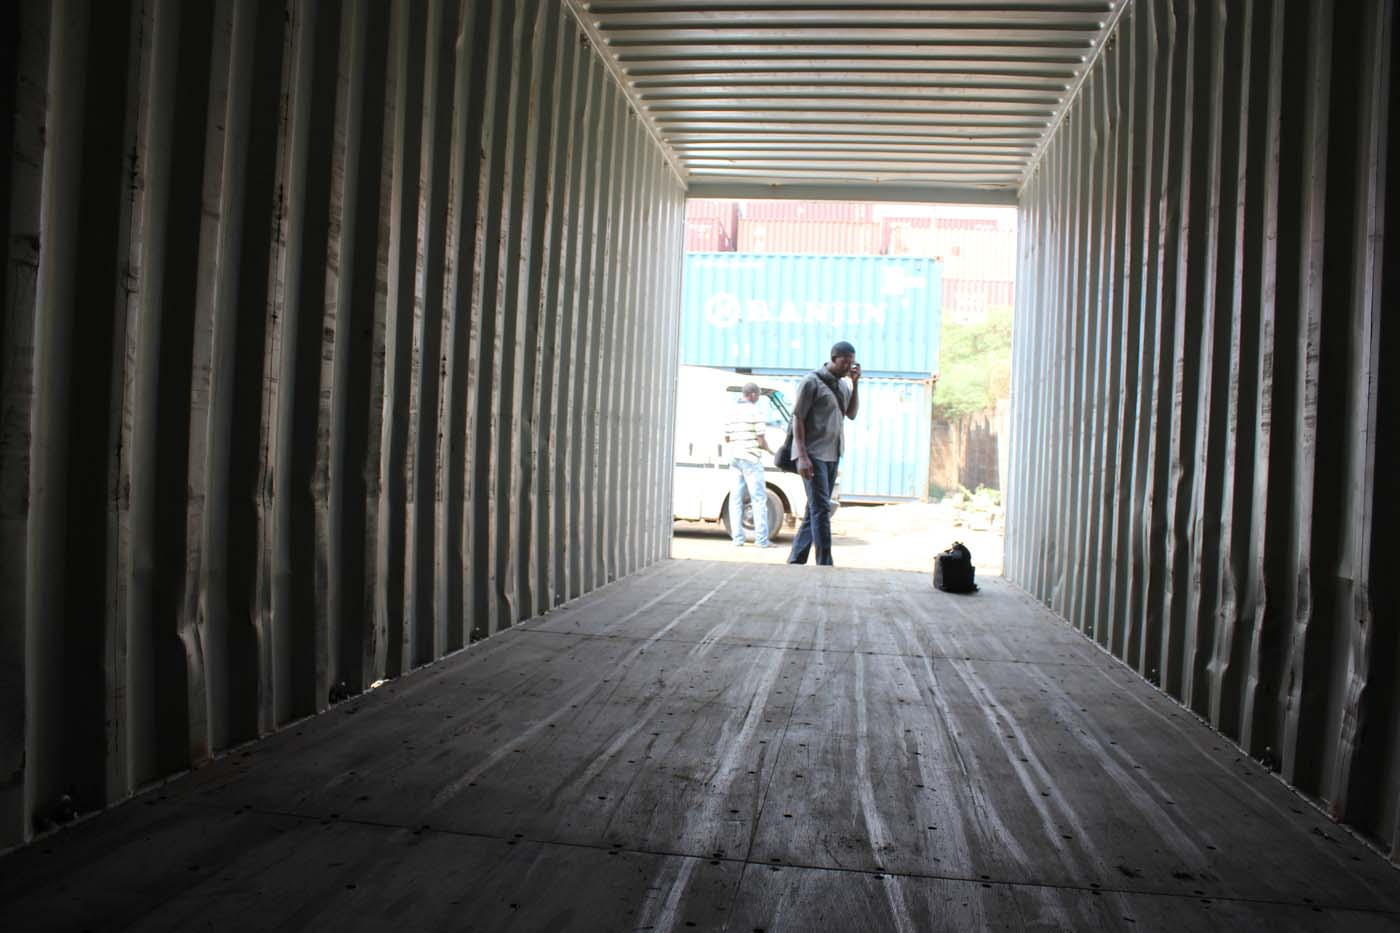 Inspecting the shipping container